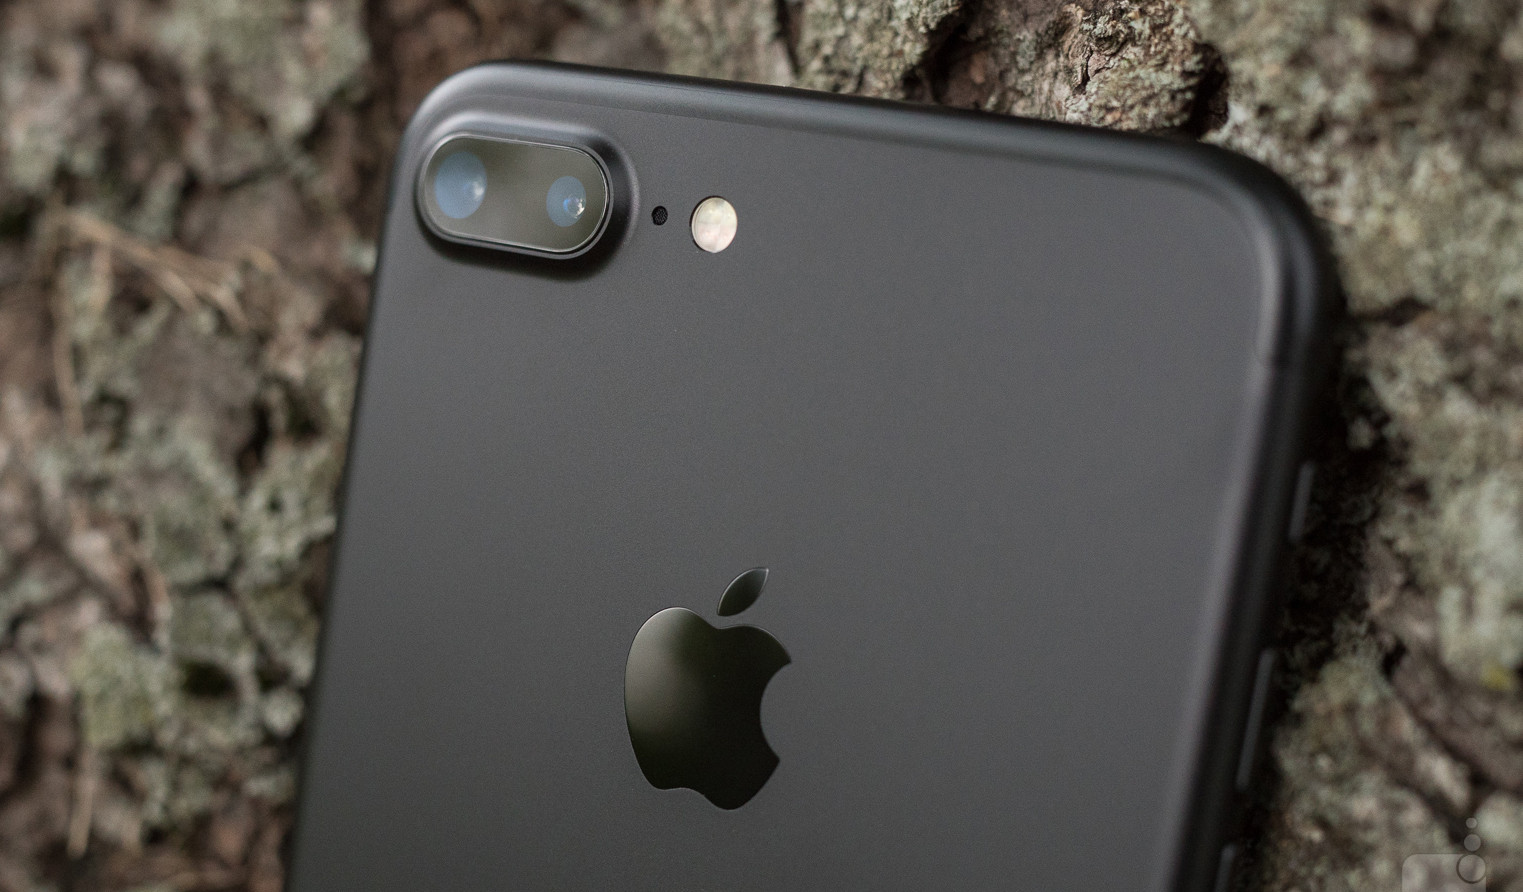 iPhone 7 Plus could surprise everyone